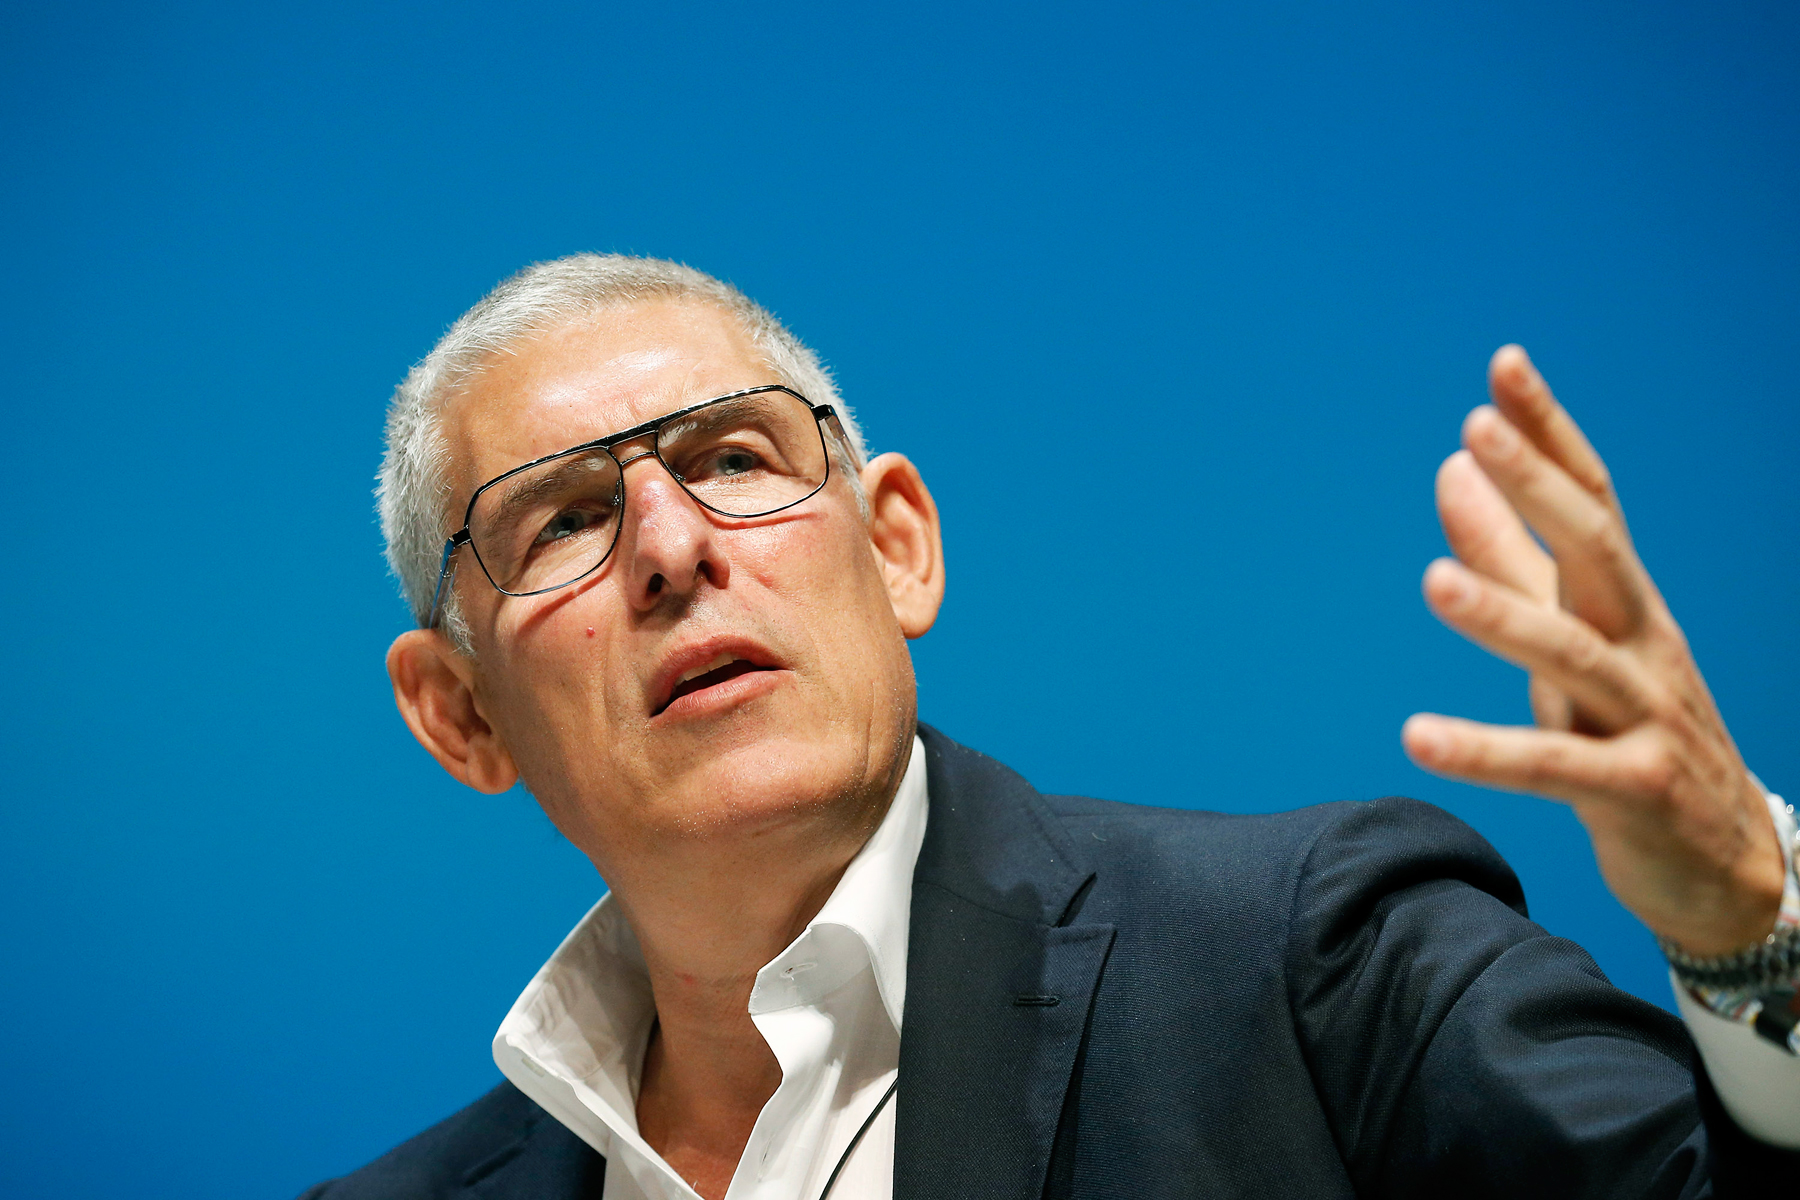 Lyor Cohen: The Album Is On Its Way Out